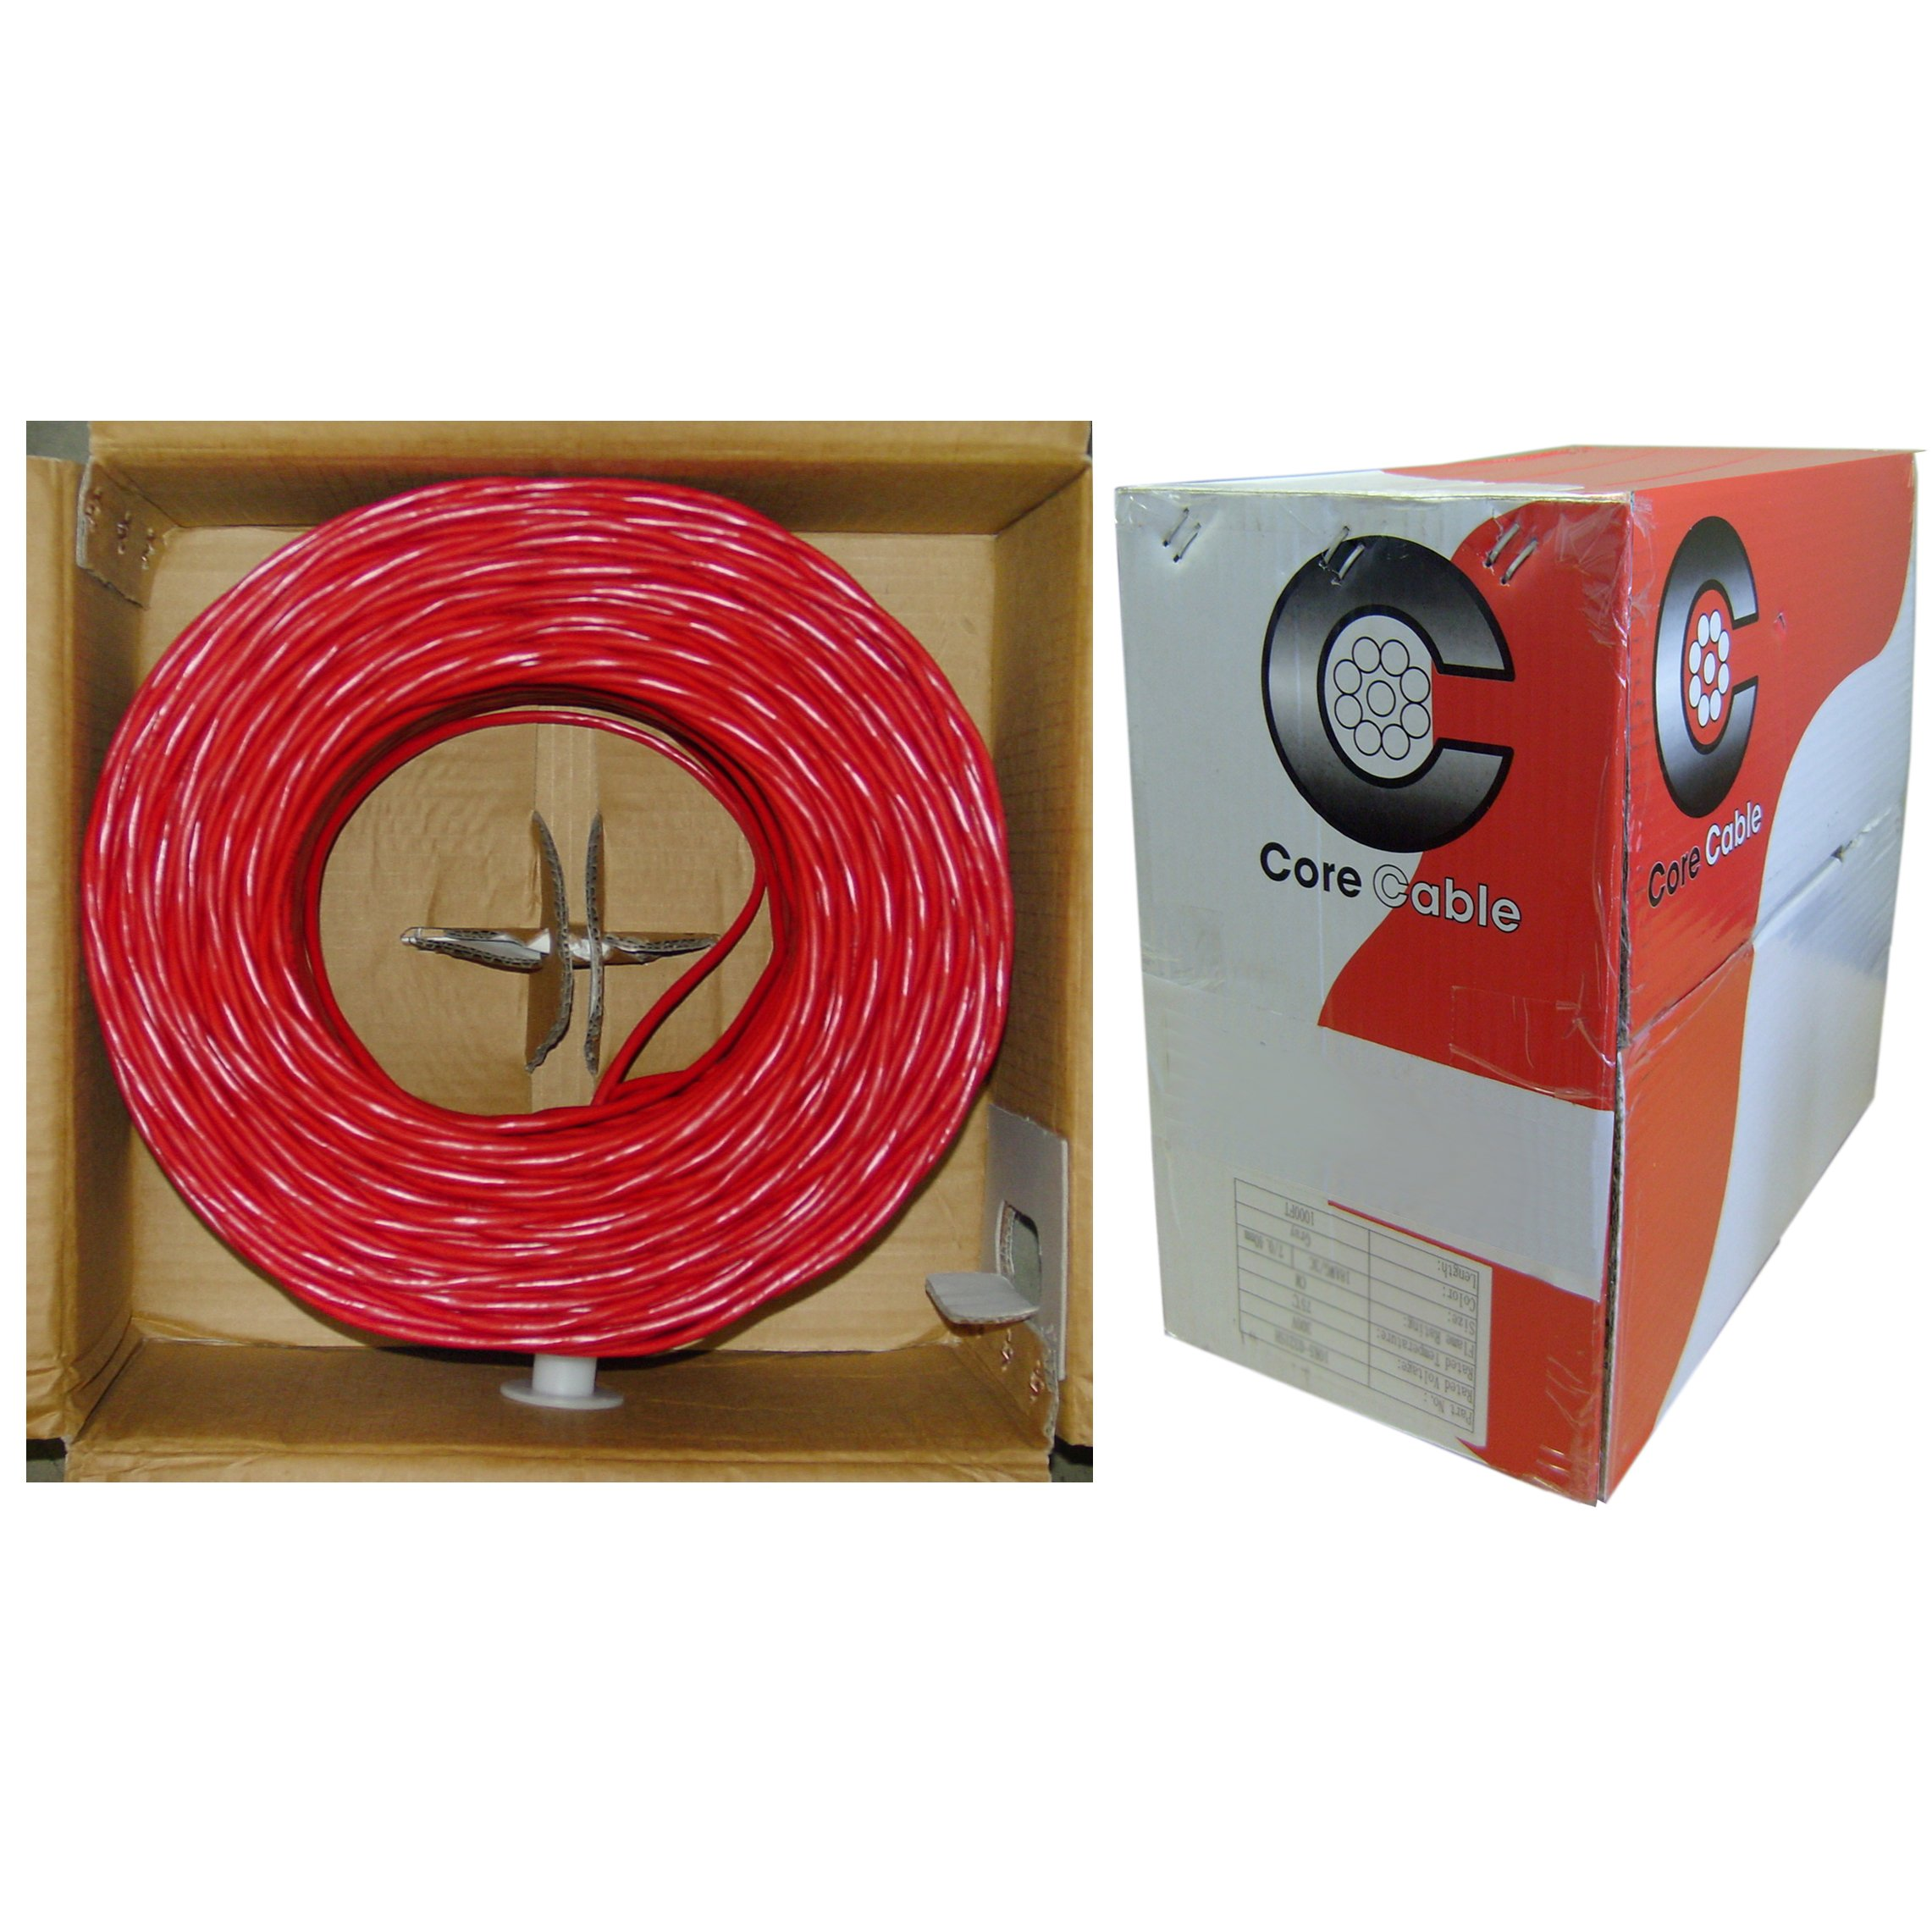 GadKo Shielded Plenum Fire Alarm / Security Cable, Red, 18/2 (18 AWG 2 Conductor), Solid, FPLP, Pullbox, 1000 foot